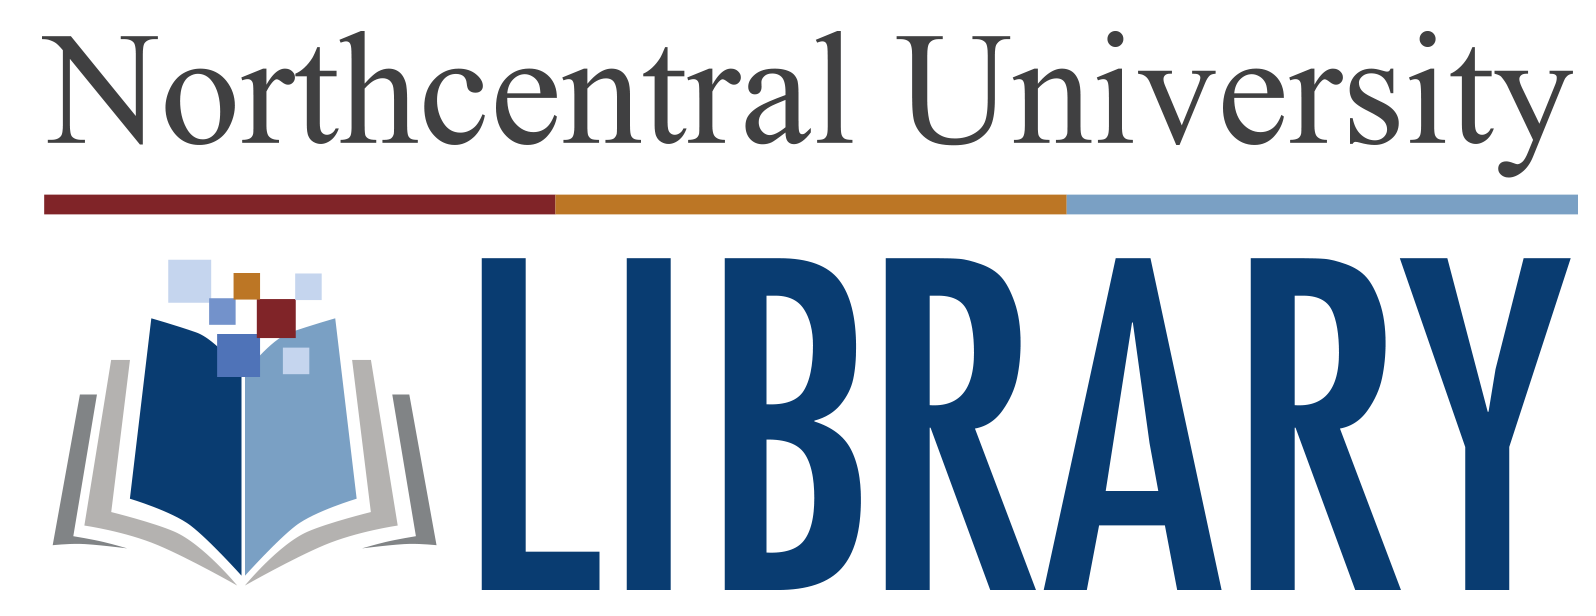 Northcentral University Library banner image